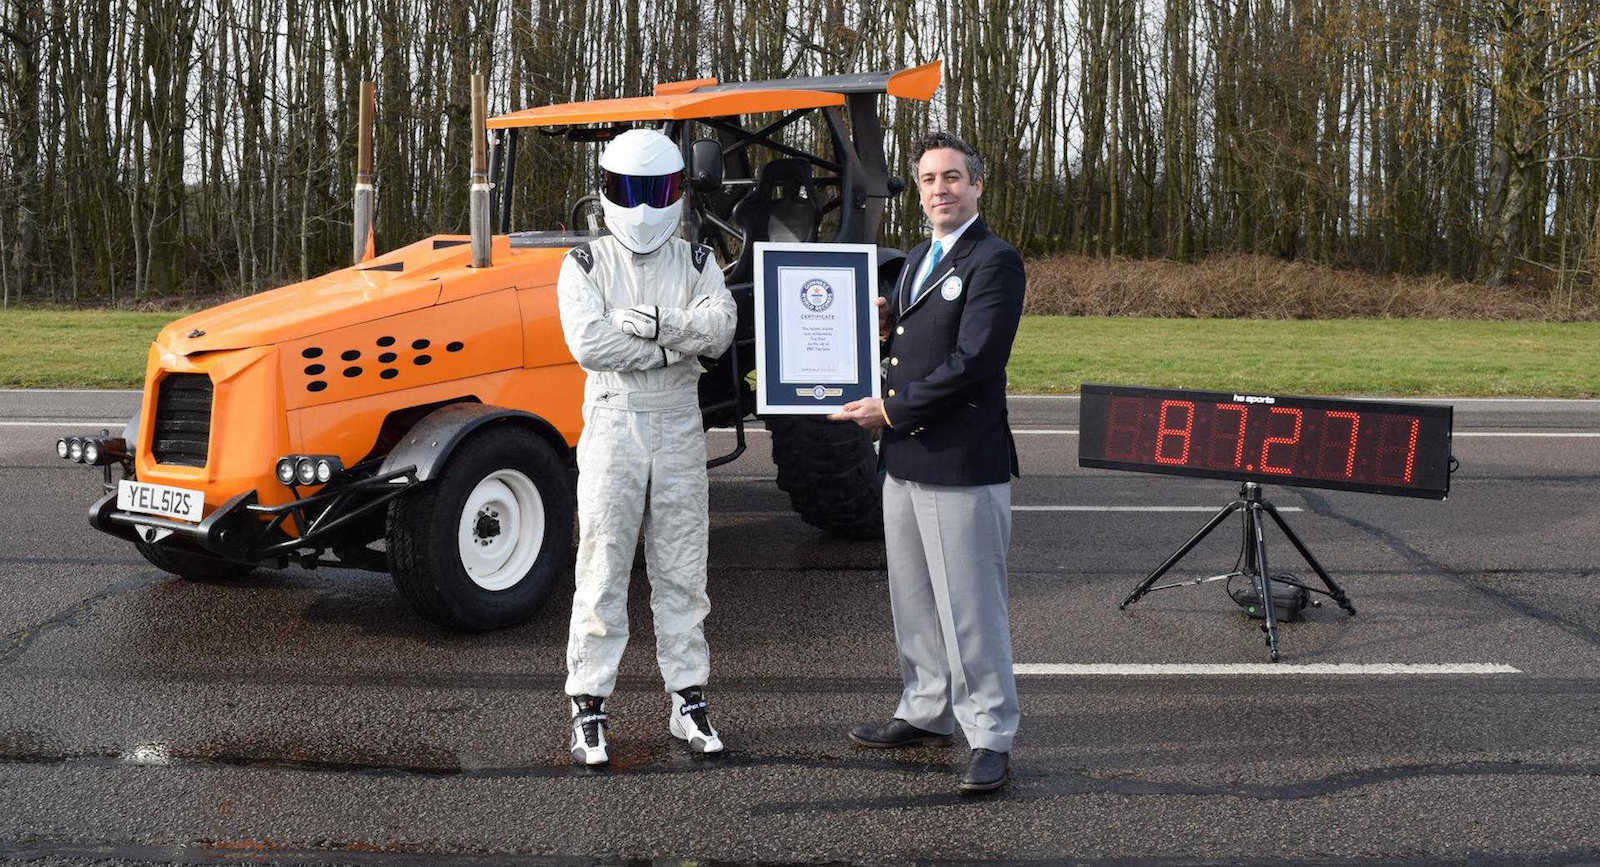 Fastest tractor in the world TopGear The Stig (1)